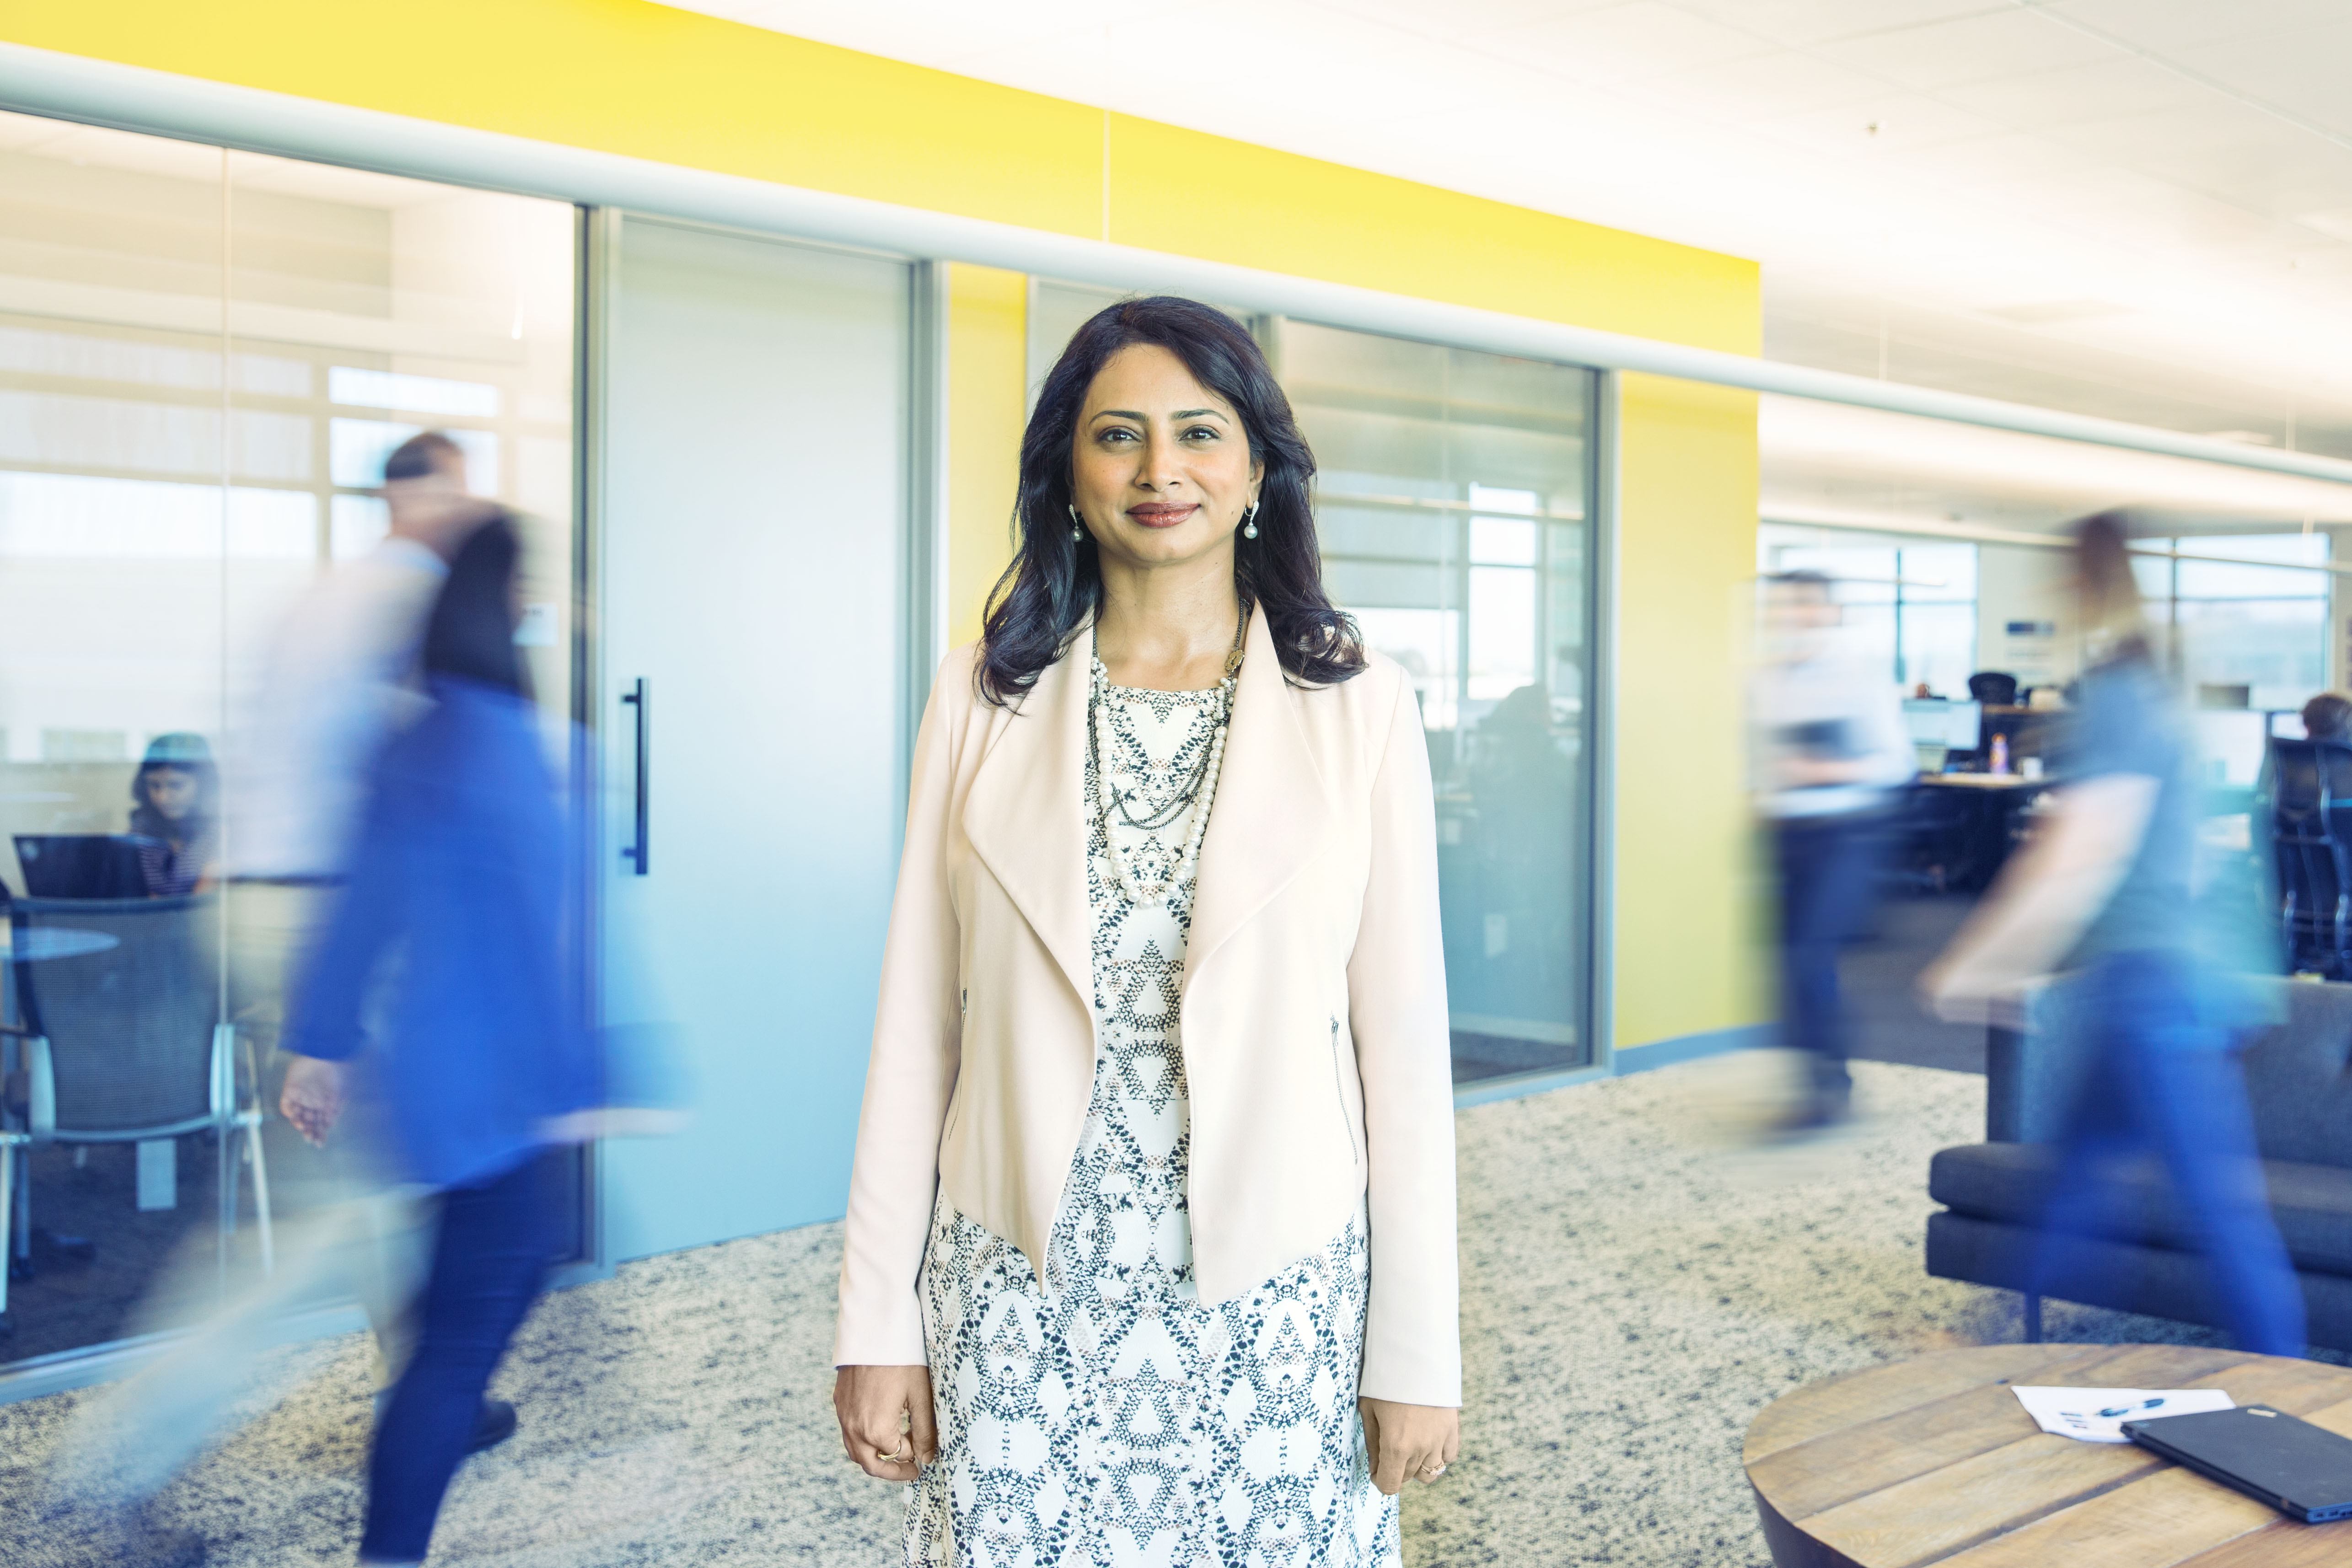 Varsha stands in a Cisco office as people around her are blurred in motion.